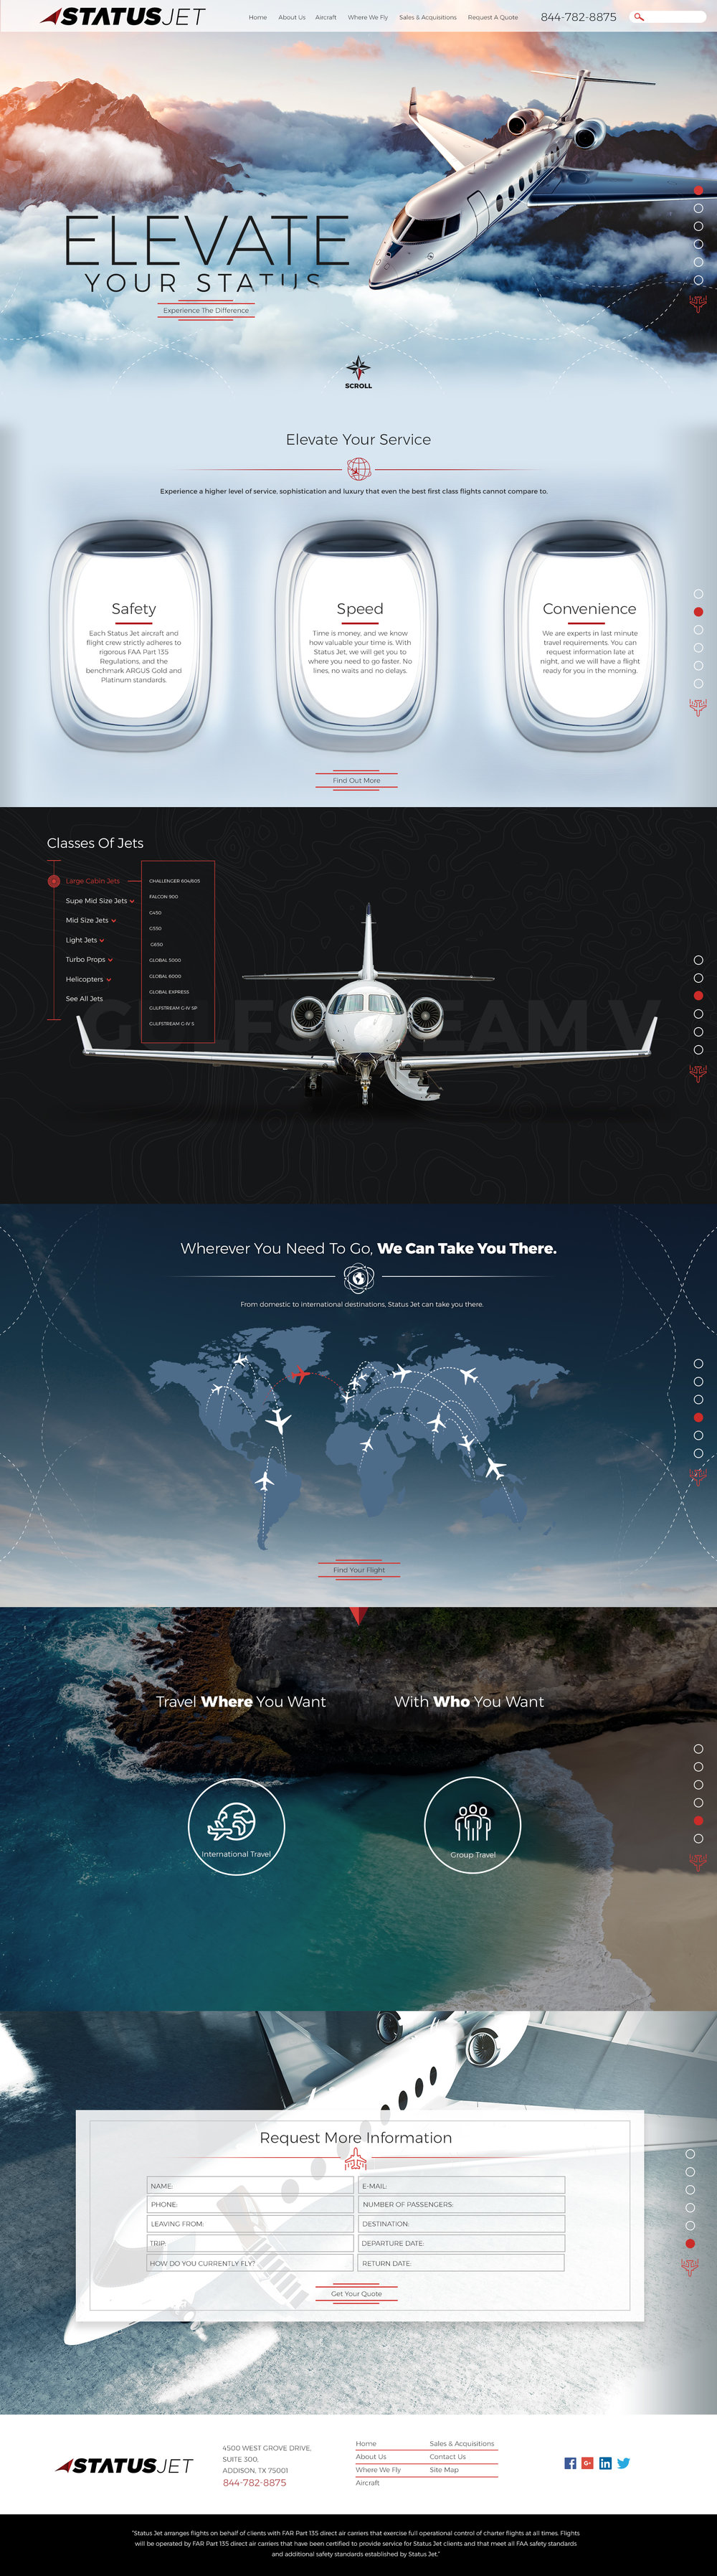 Web Design: Status Jet-Transportation Website